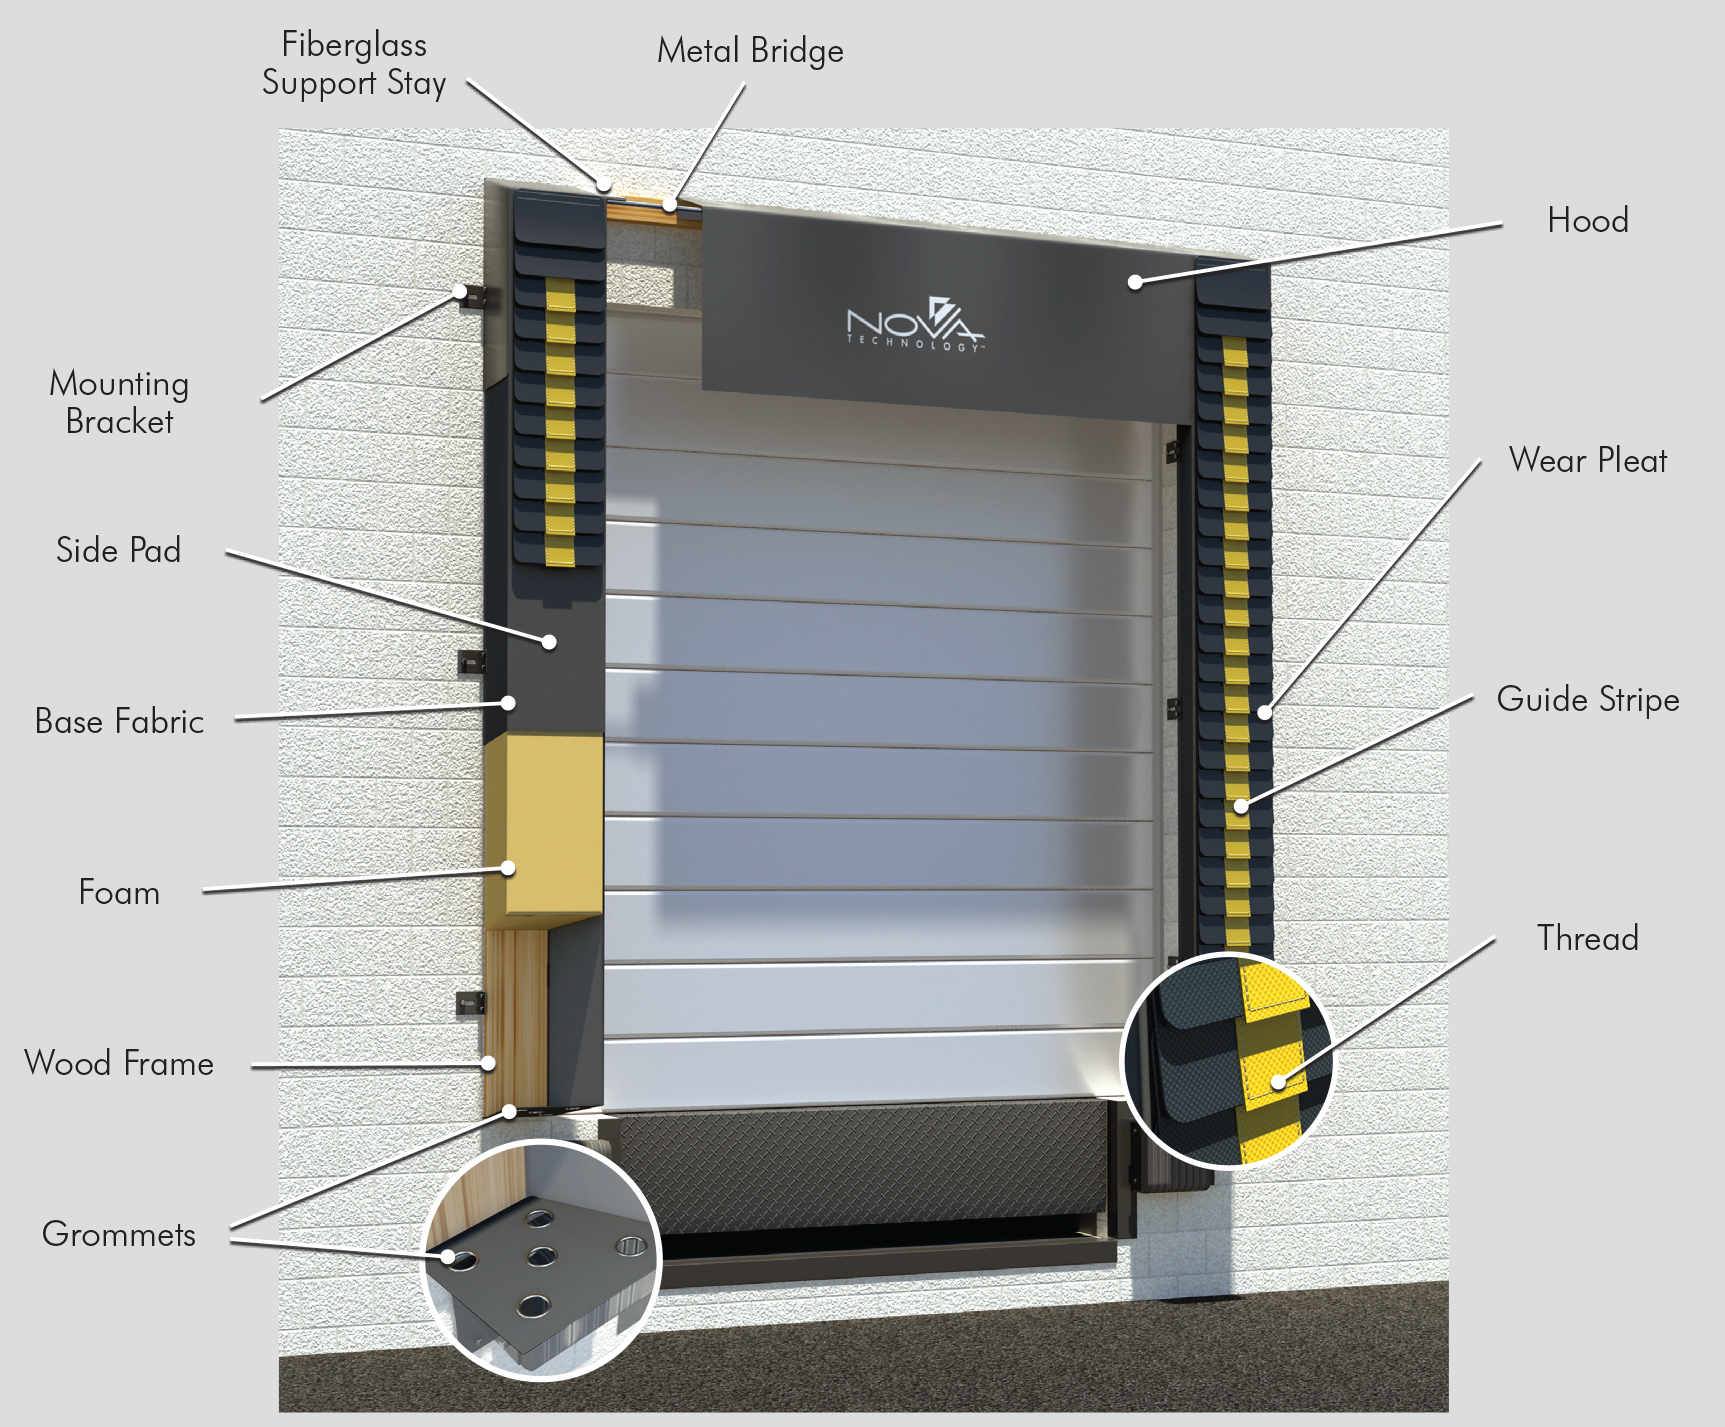 DESIGNED FOR DOOR OPENINGS UP TO 9 FT WIDE X 12 FT HIGH FPH Series Dock Seal\u2014features a hood-style head curtain in place of a\u2026 Read more » & Dock Seals \u0026 Shelters Archives - Nova Technology